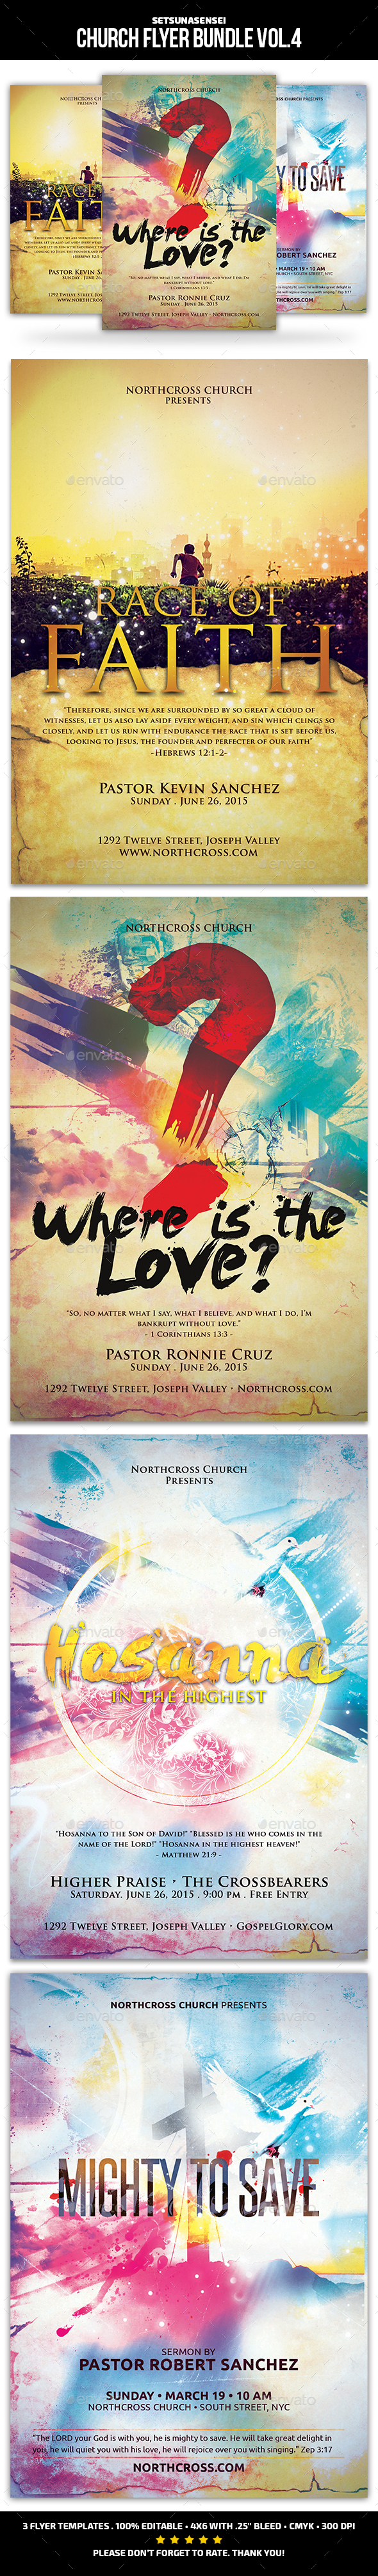 Church Flyer Bundle Vol. 5 - Church Flyers